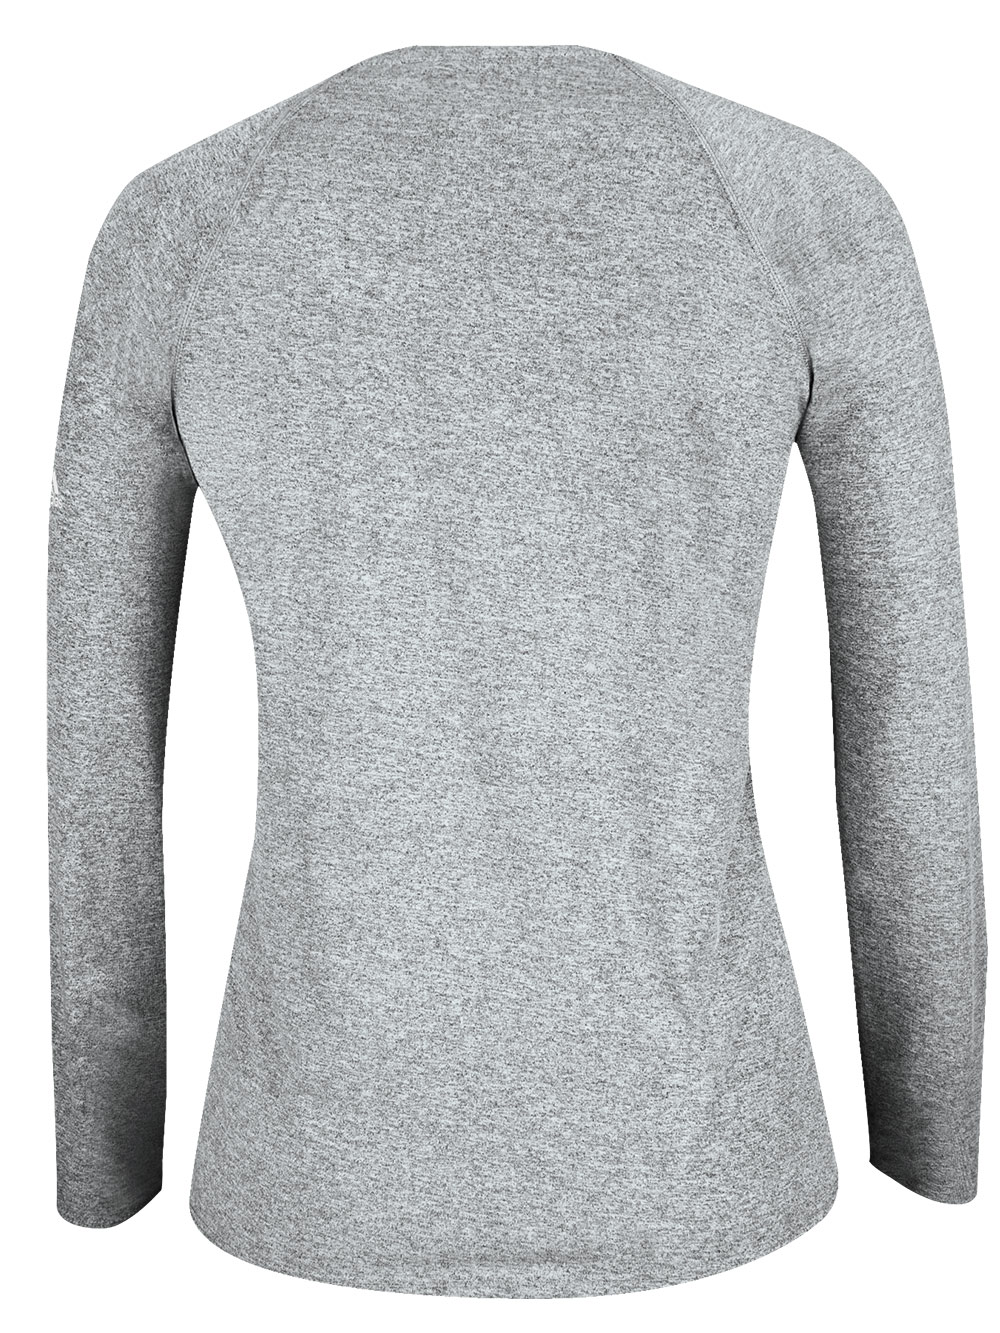 183d9e4bd Women's ADIDAS Climalite Long Sleeve Tee | Midwest Volleyball Warehouse